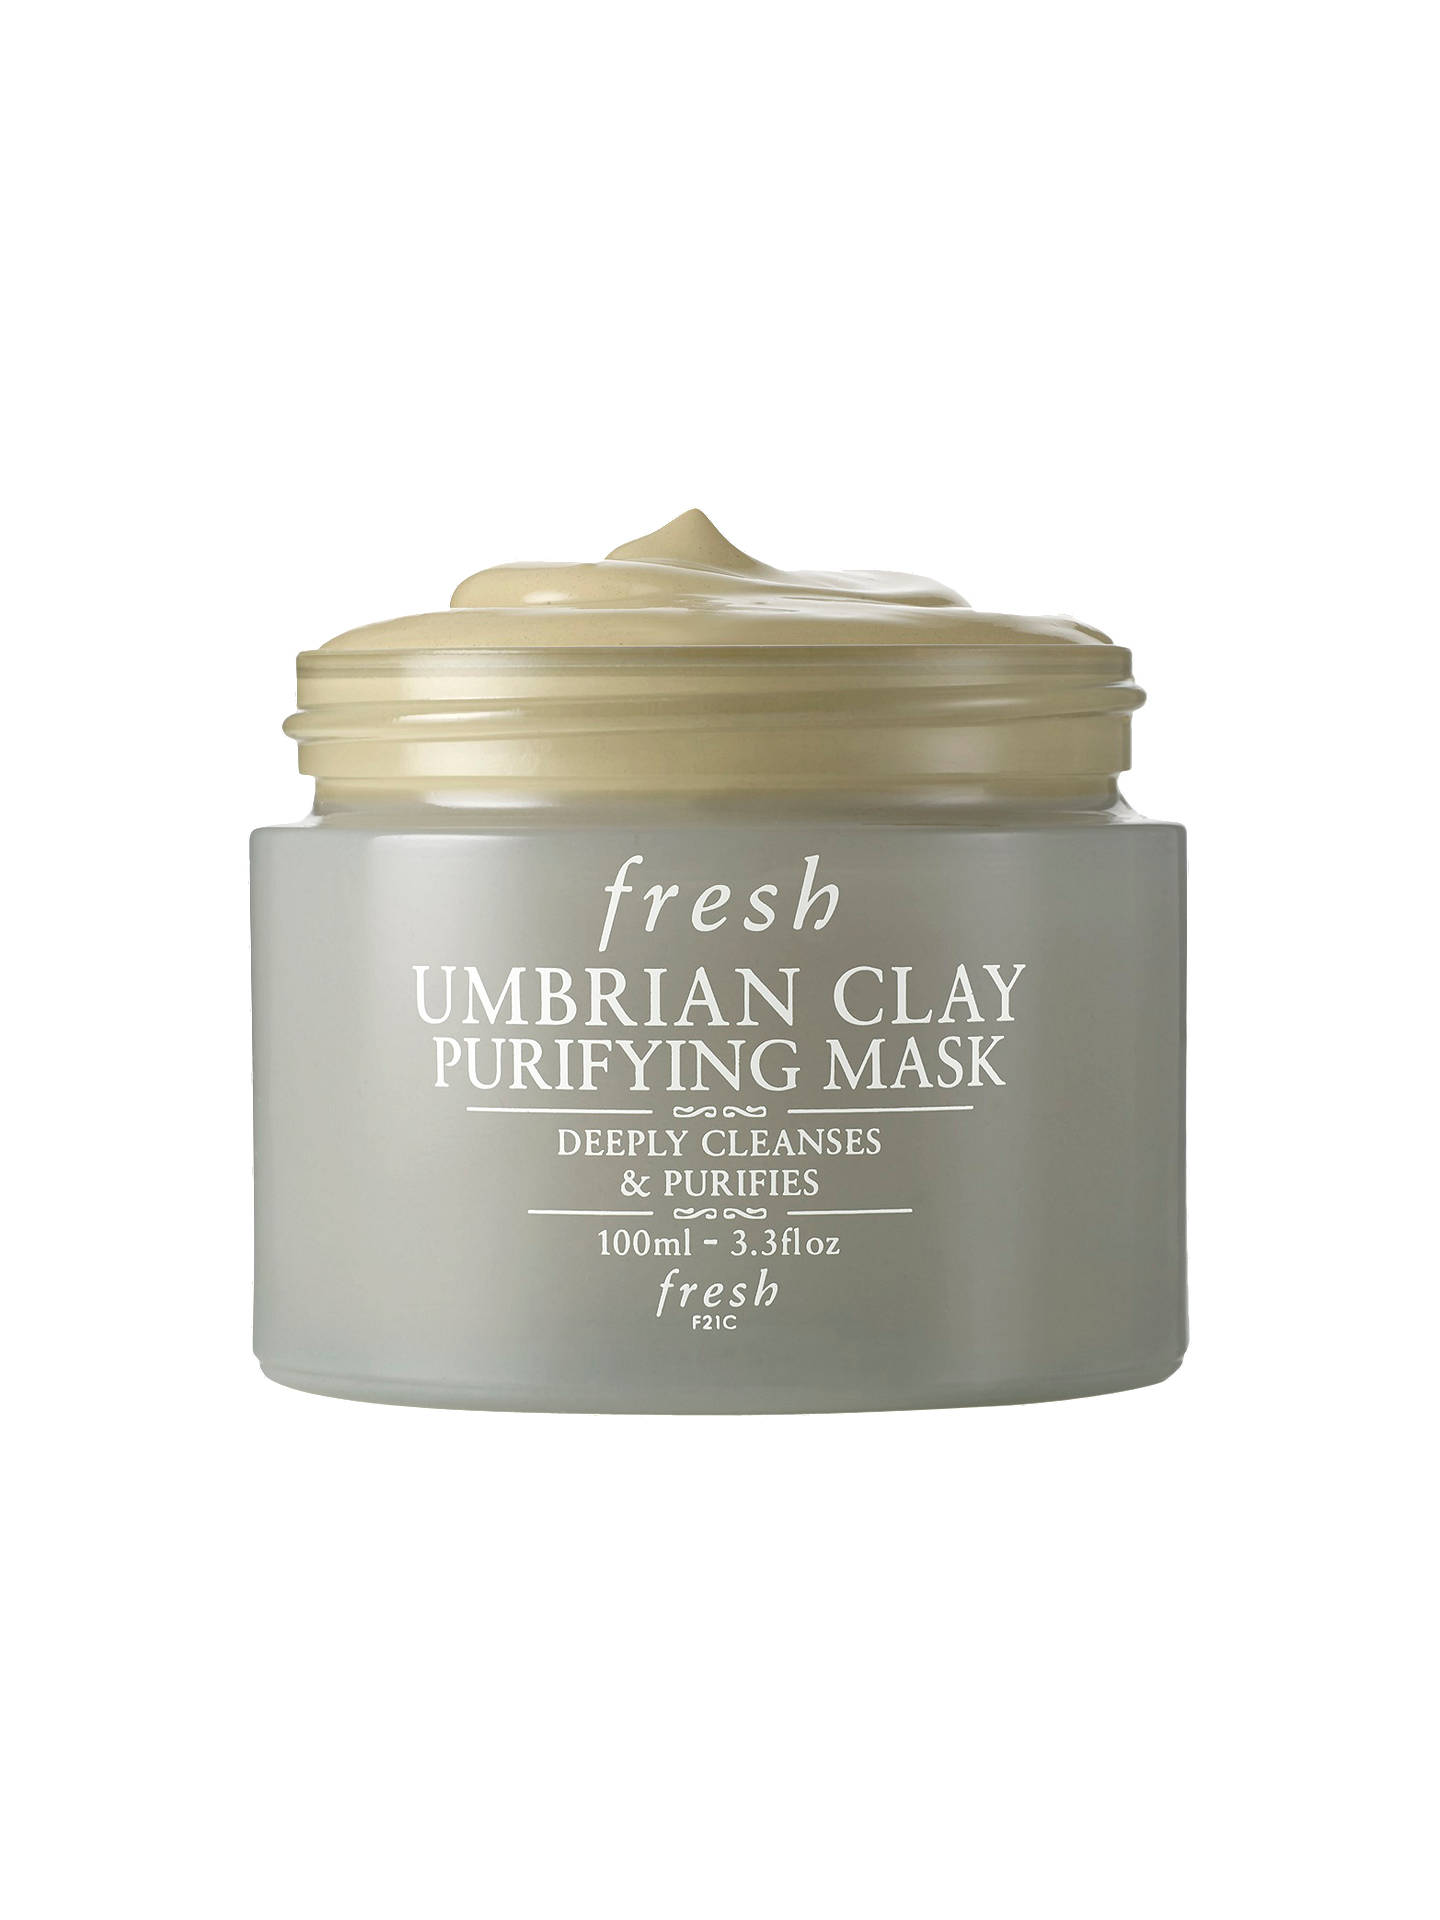 BuyFresh Umbrian Clay Purifying Mask, 100ml Online at johnlewis.com